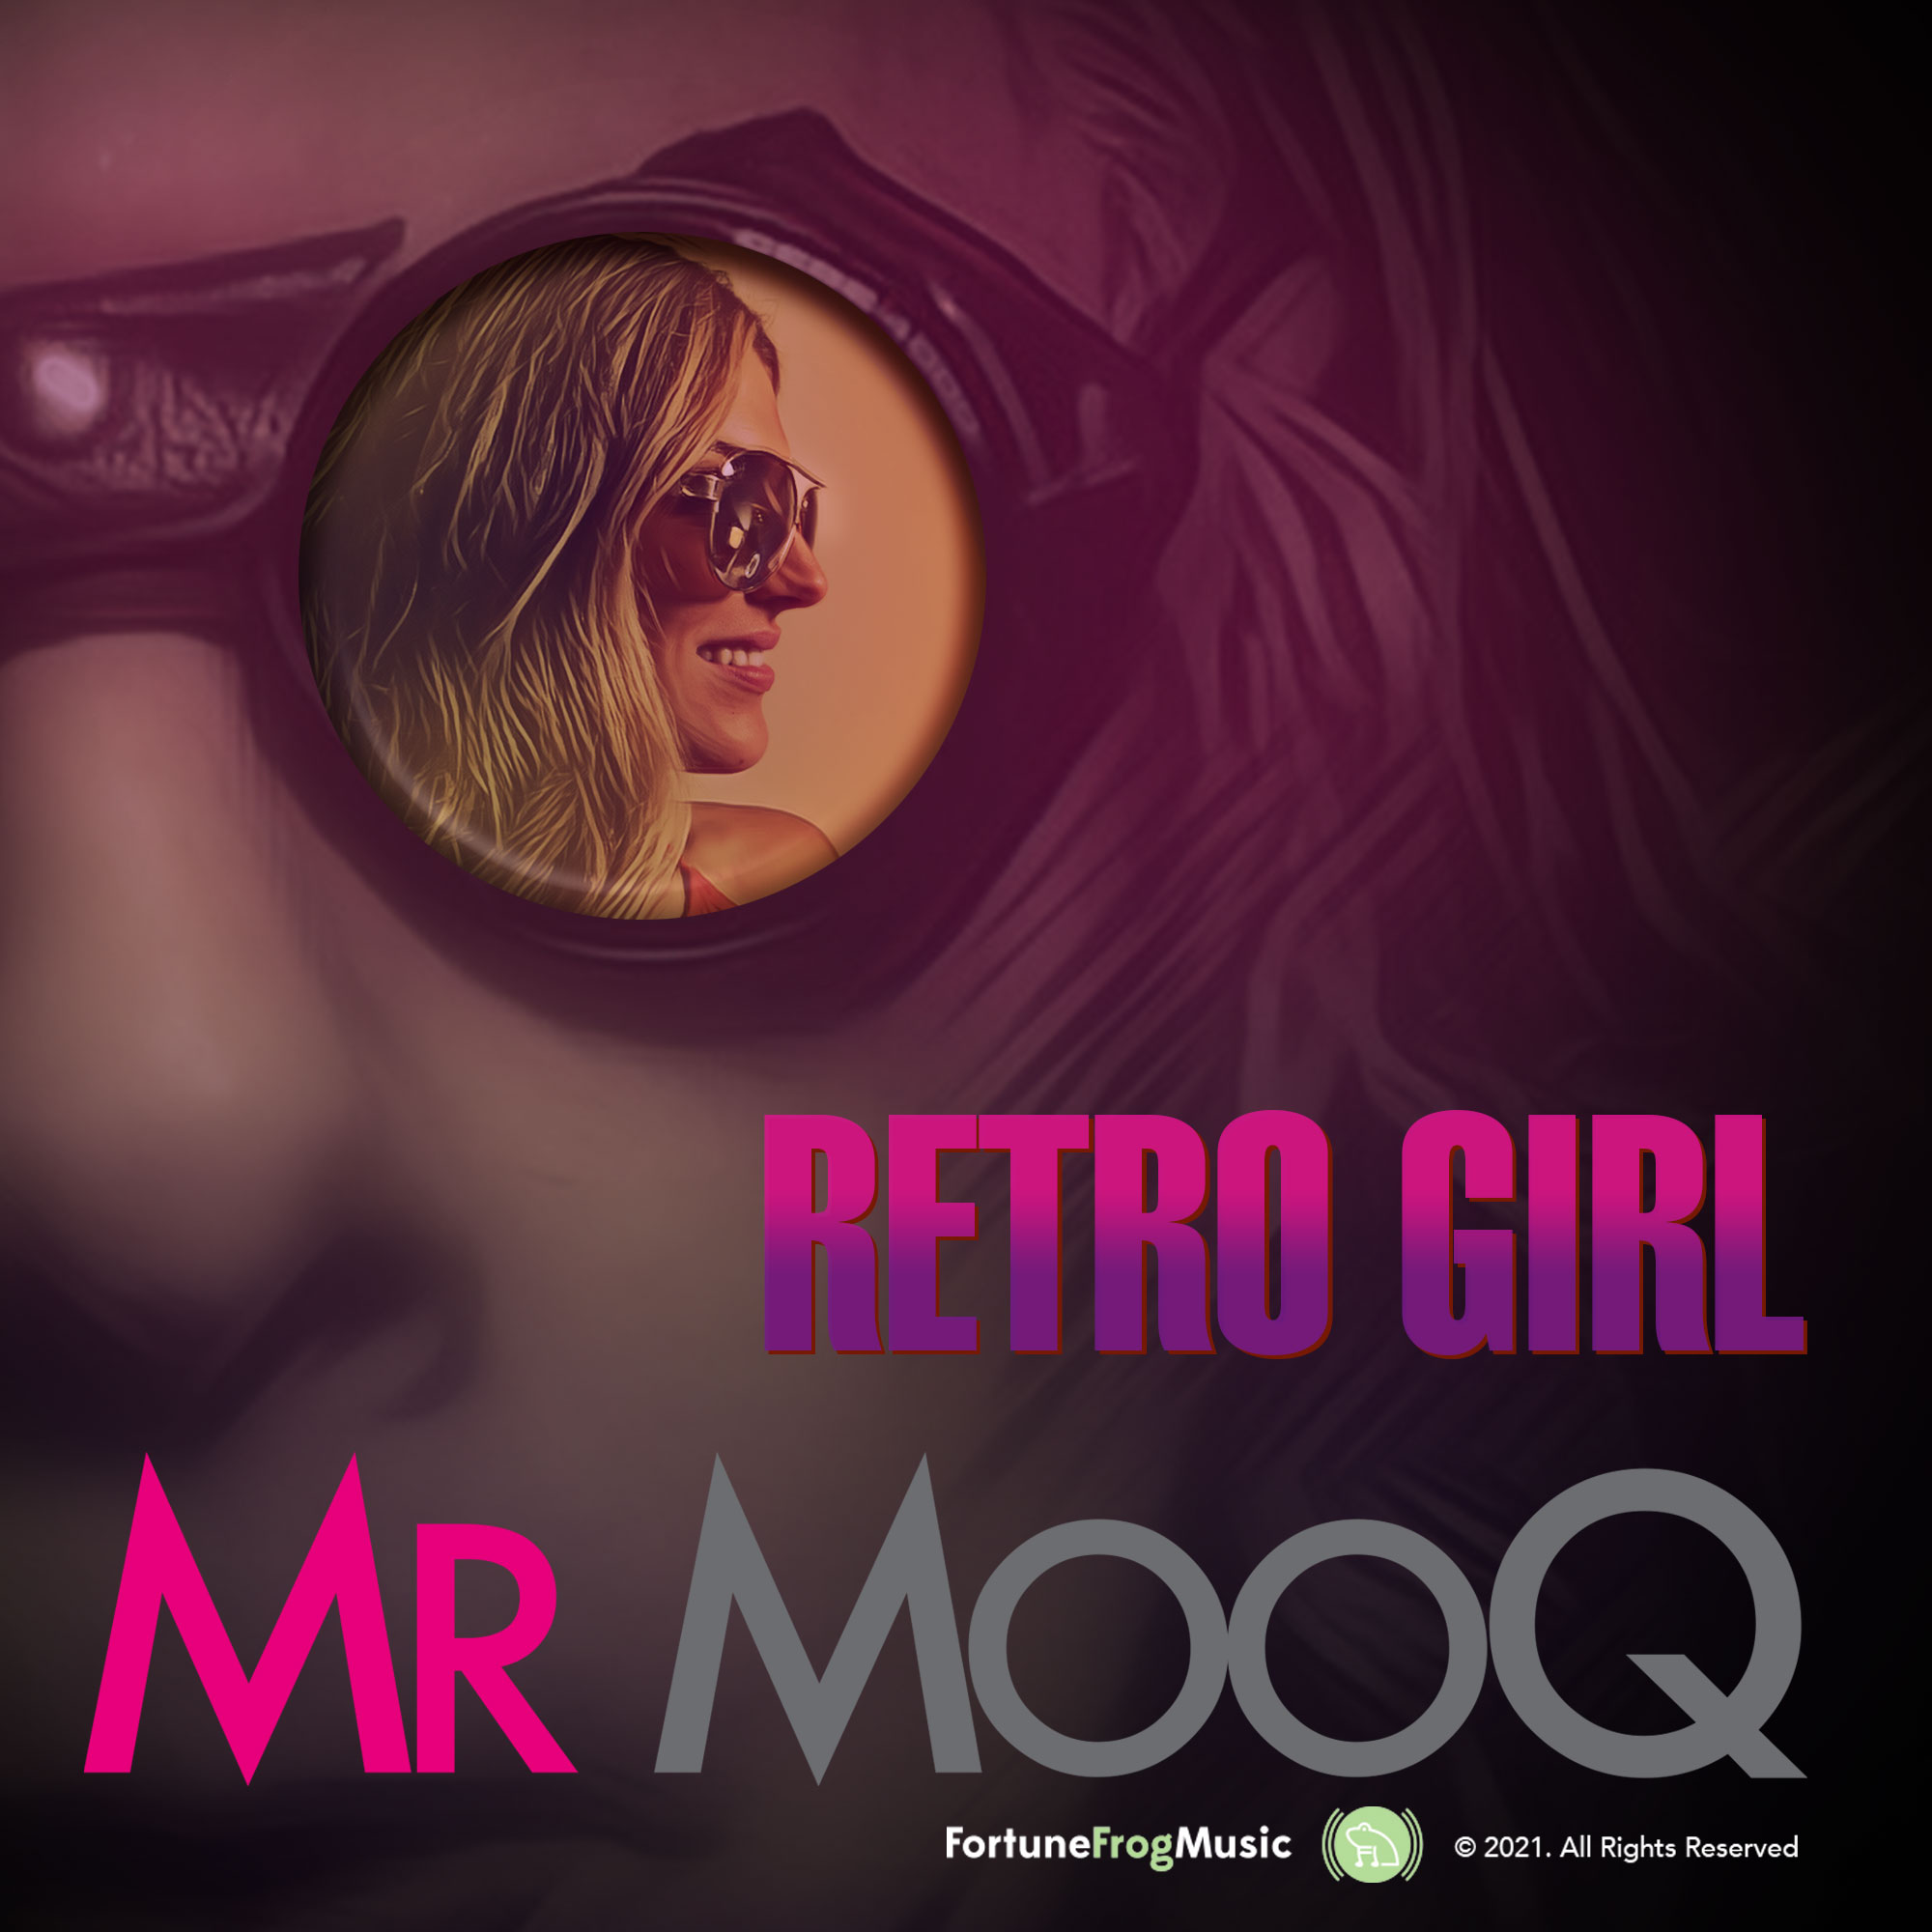 Mr. MooQ Delivers Another Romantic Classic in Retro Girl